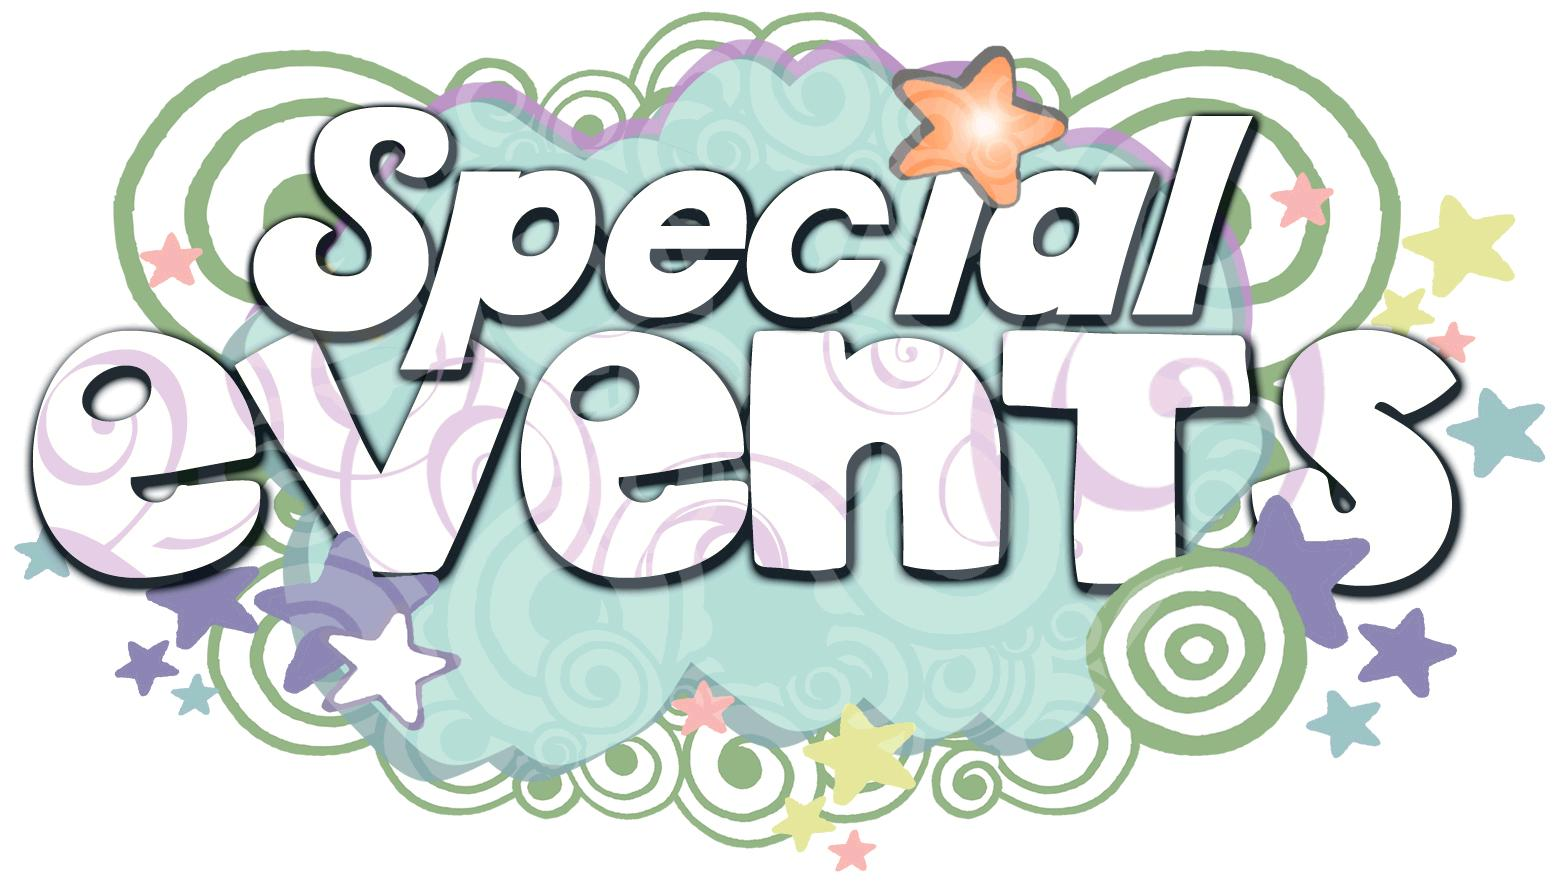 Free Community Events Clipart-Free Community Events Clipart-19